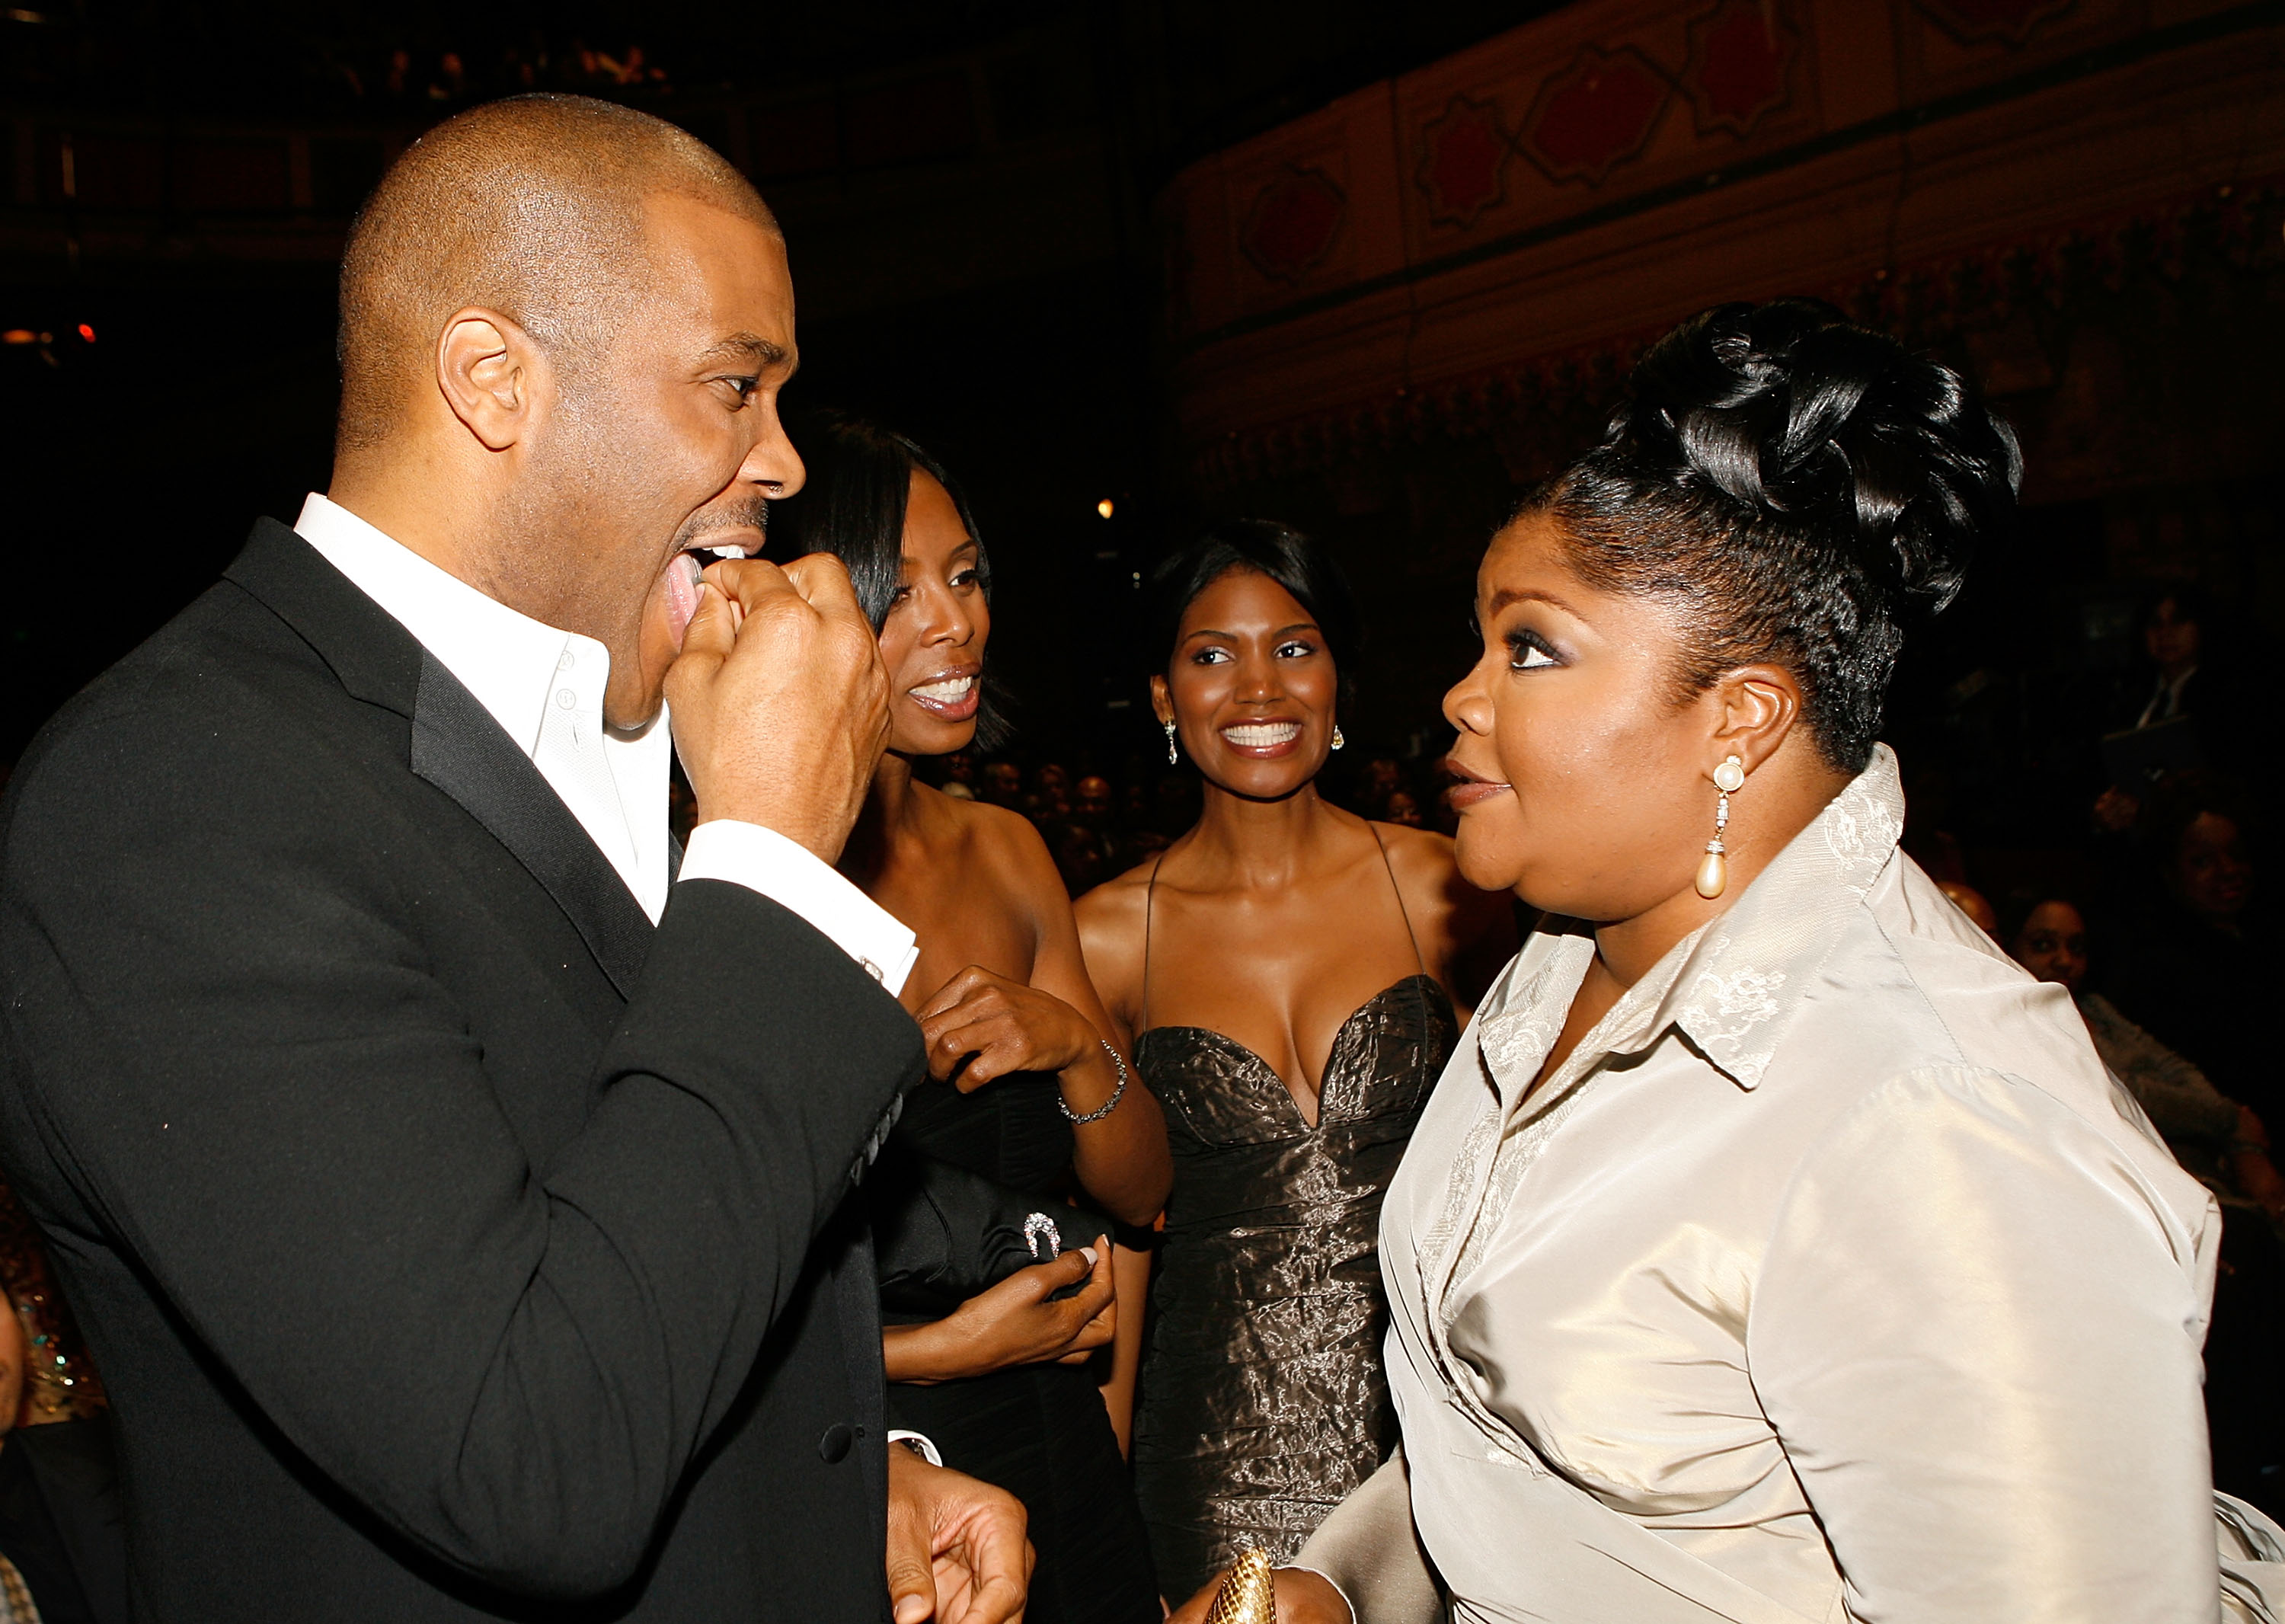 38th Annual NAACP Image Awards - Audience